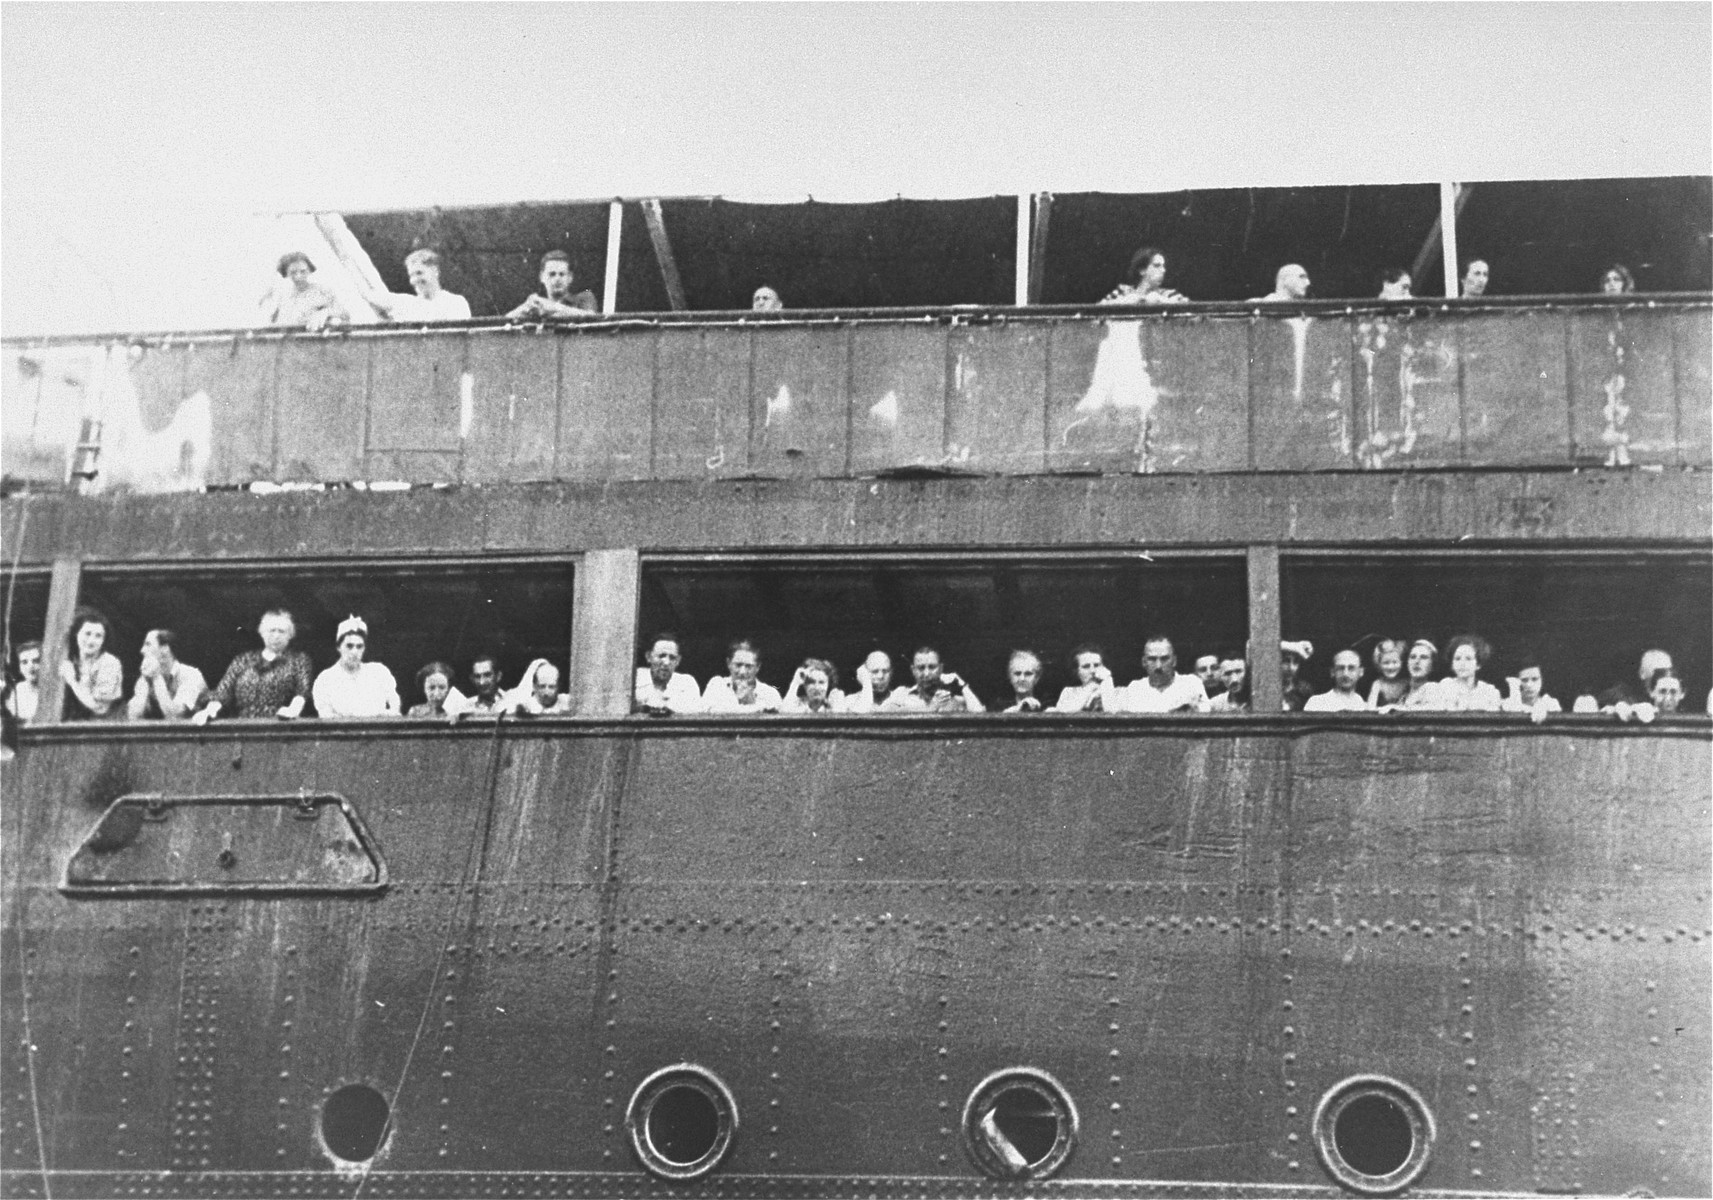 Jewish refugees aboard the MS St. Louis attempt to communicate with friends and relatives in Cuba, who were permitted to approach the docked vessel in small boats.